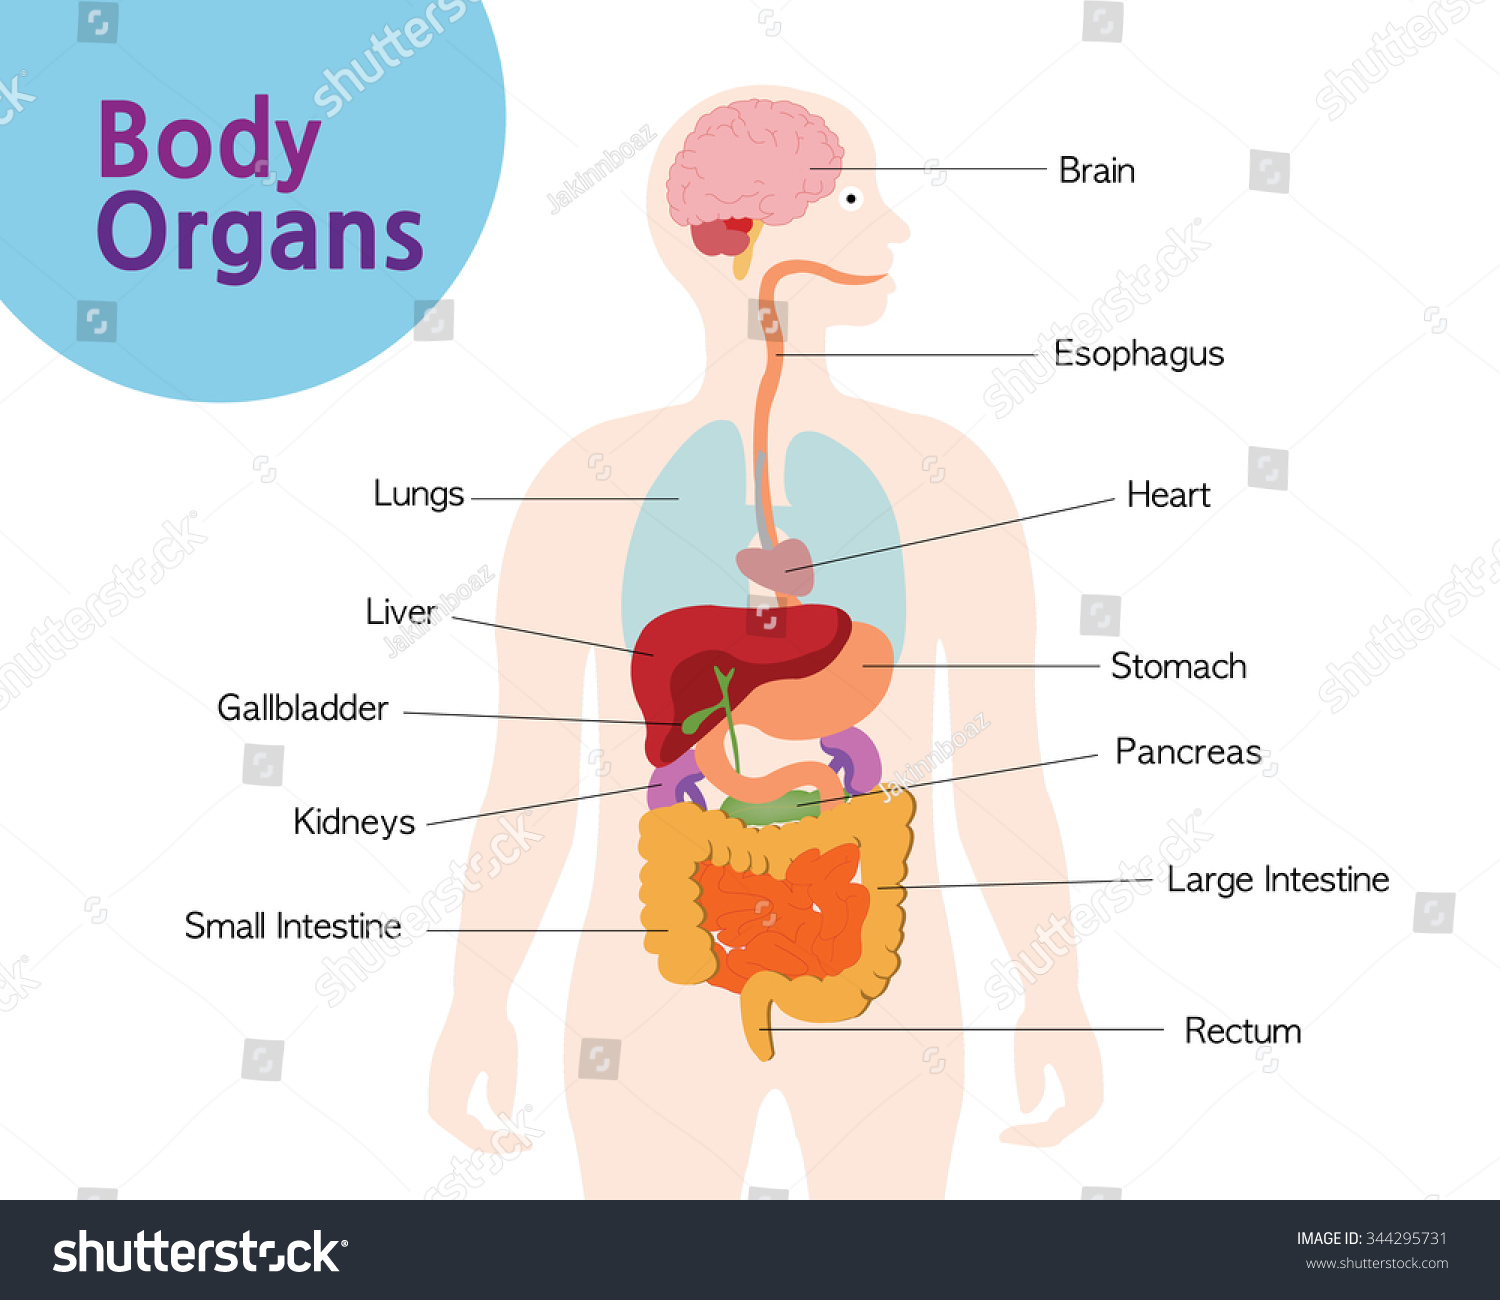 Picture Organs Your Body Stock Vector 344295731 - Shutterstock